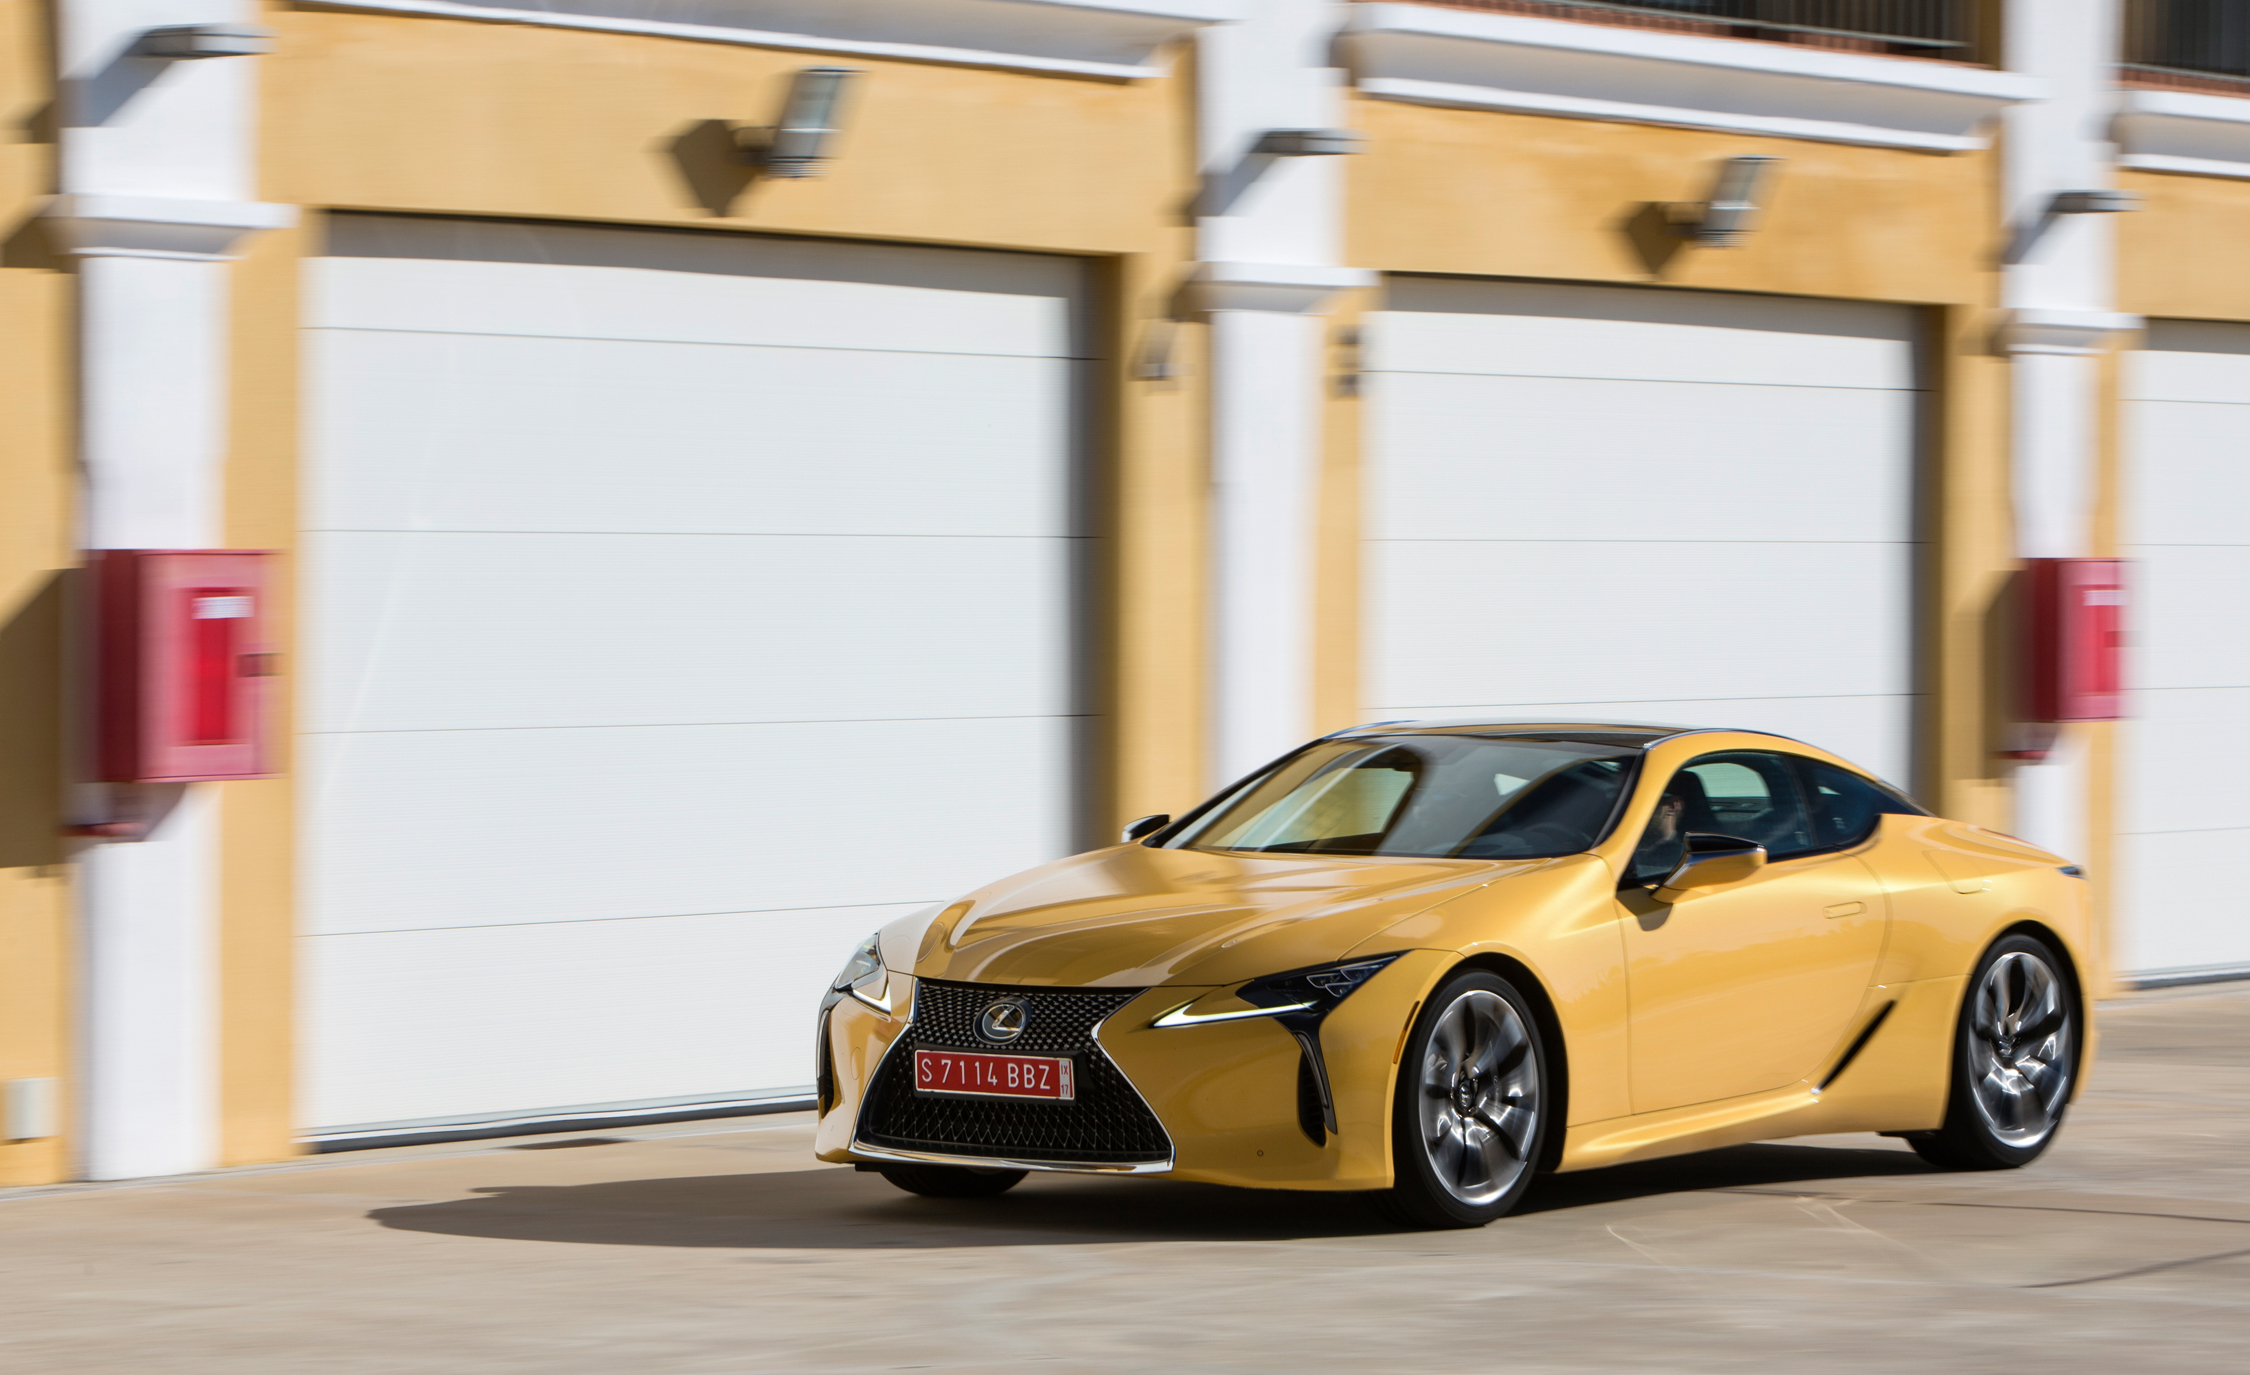 2018 Lexus Lc 500 Yellow Test Drive (Photo 29 of 84)